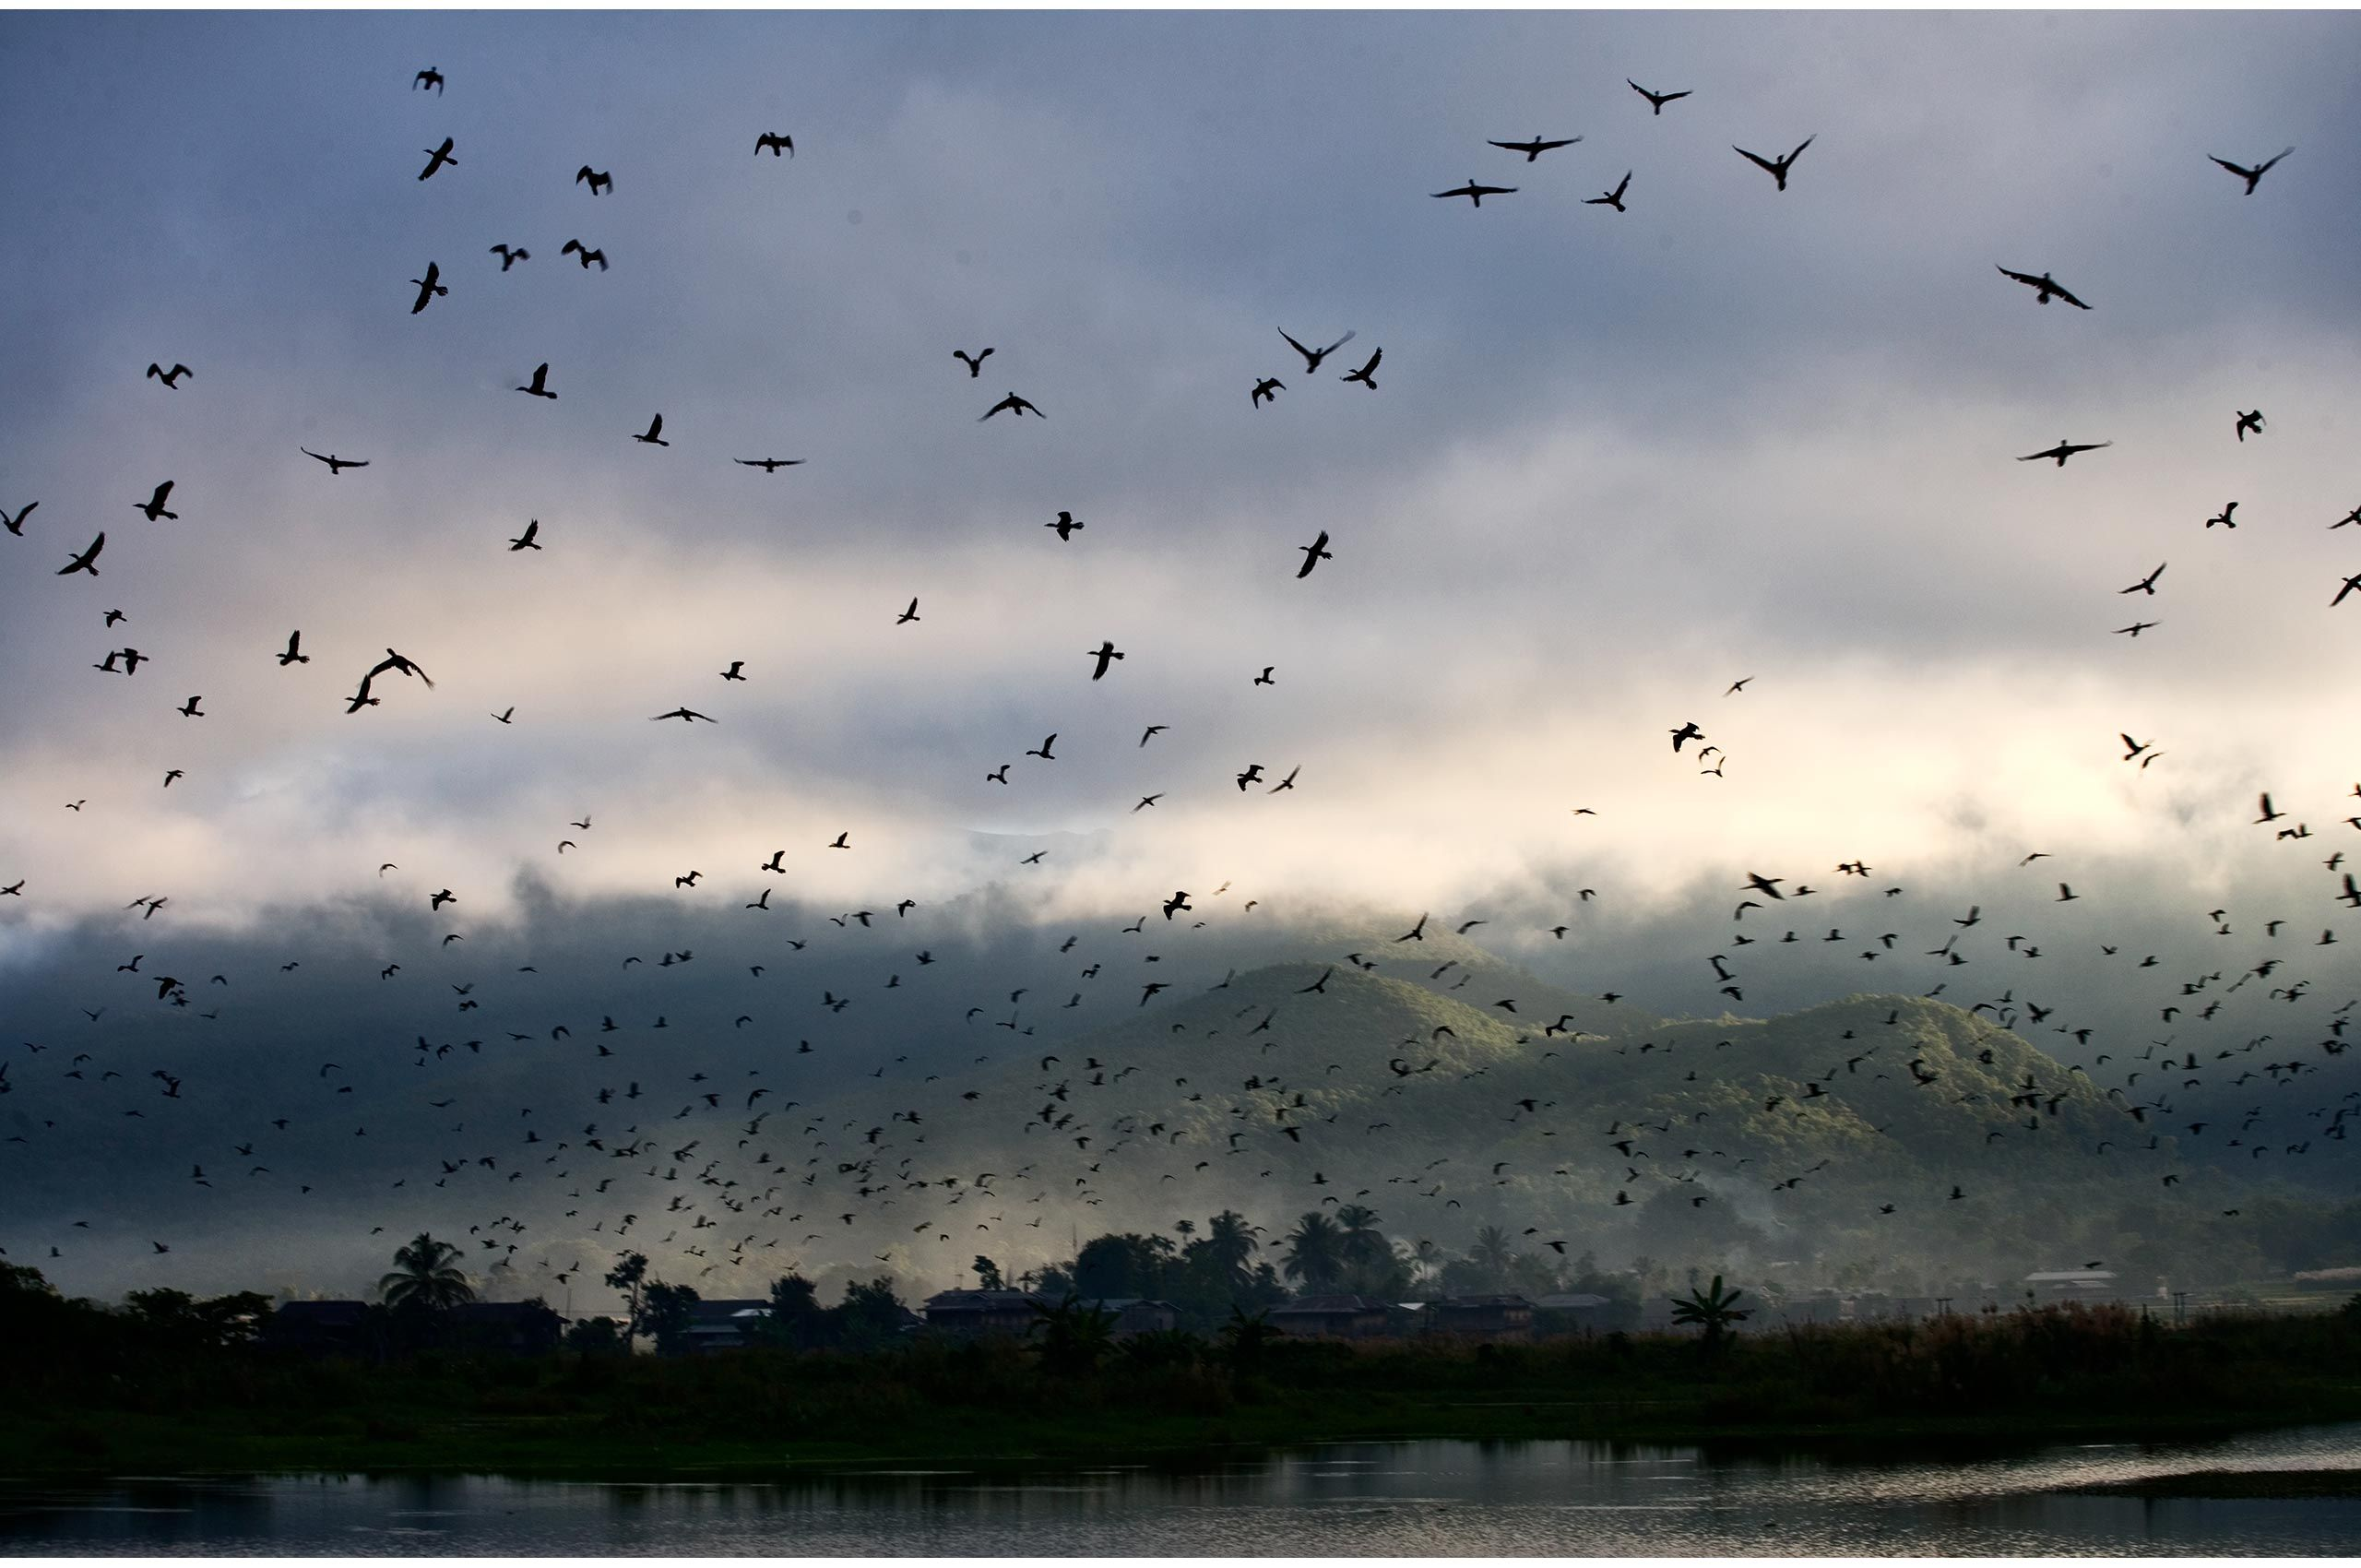 myanmar-morning-with-birds-HenrikOlundPhotography.jpg